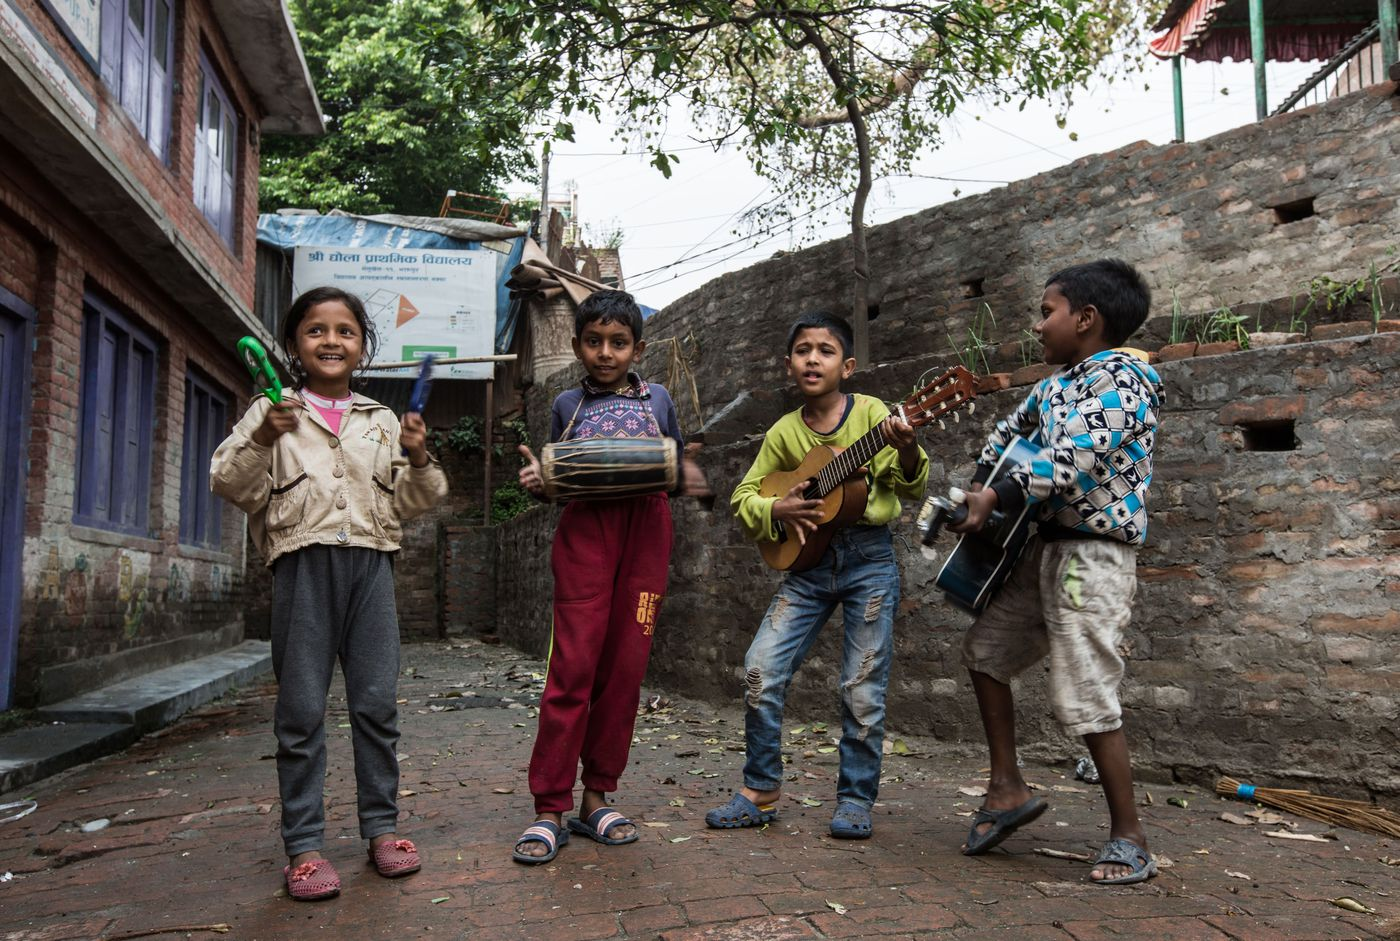 Participants at the Happy Kids Center playing music for tourists who happened to pass by. The children's instruments, along with all the toys at the center, were donated by volunteers and community members.